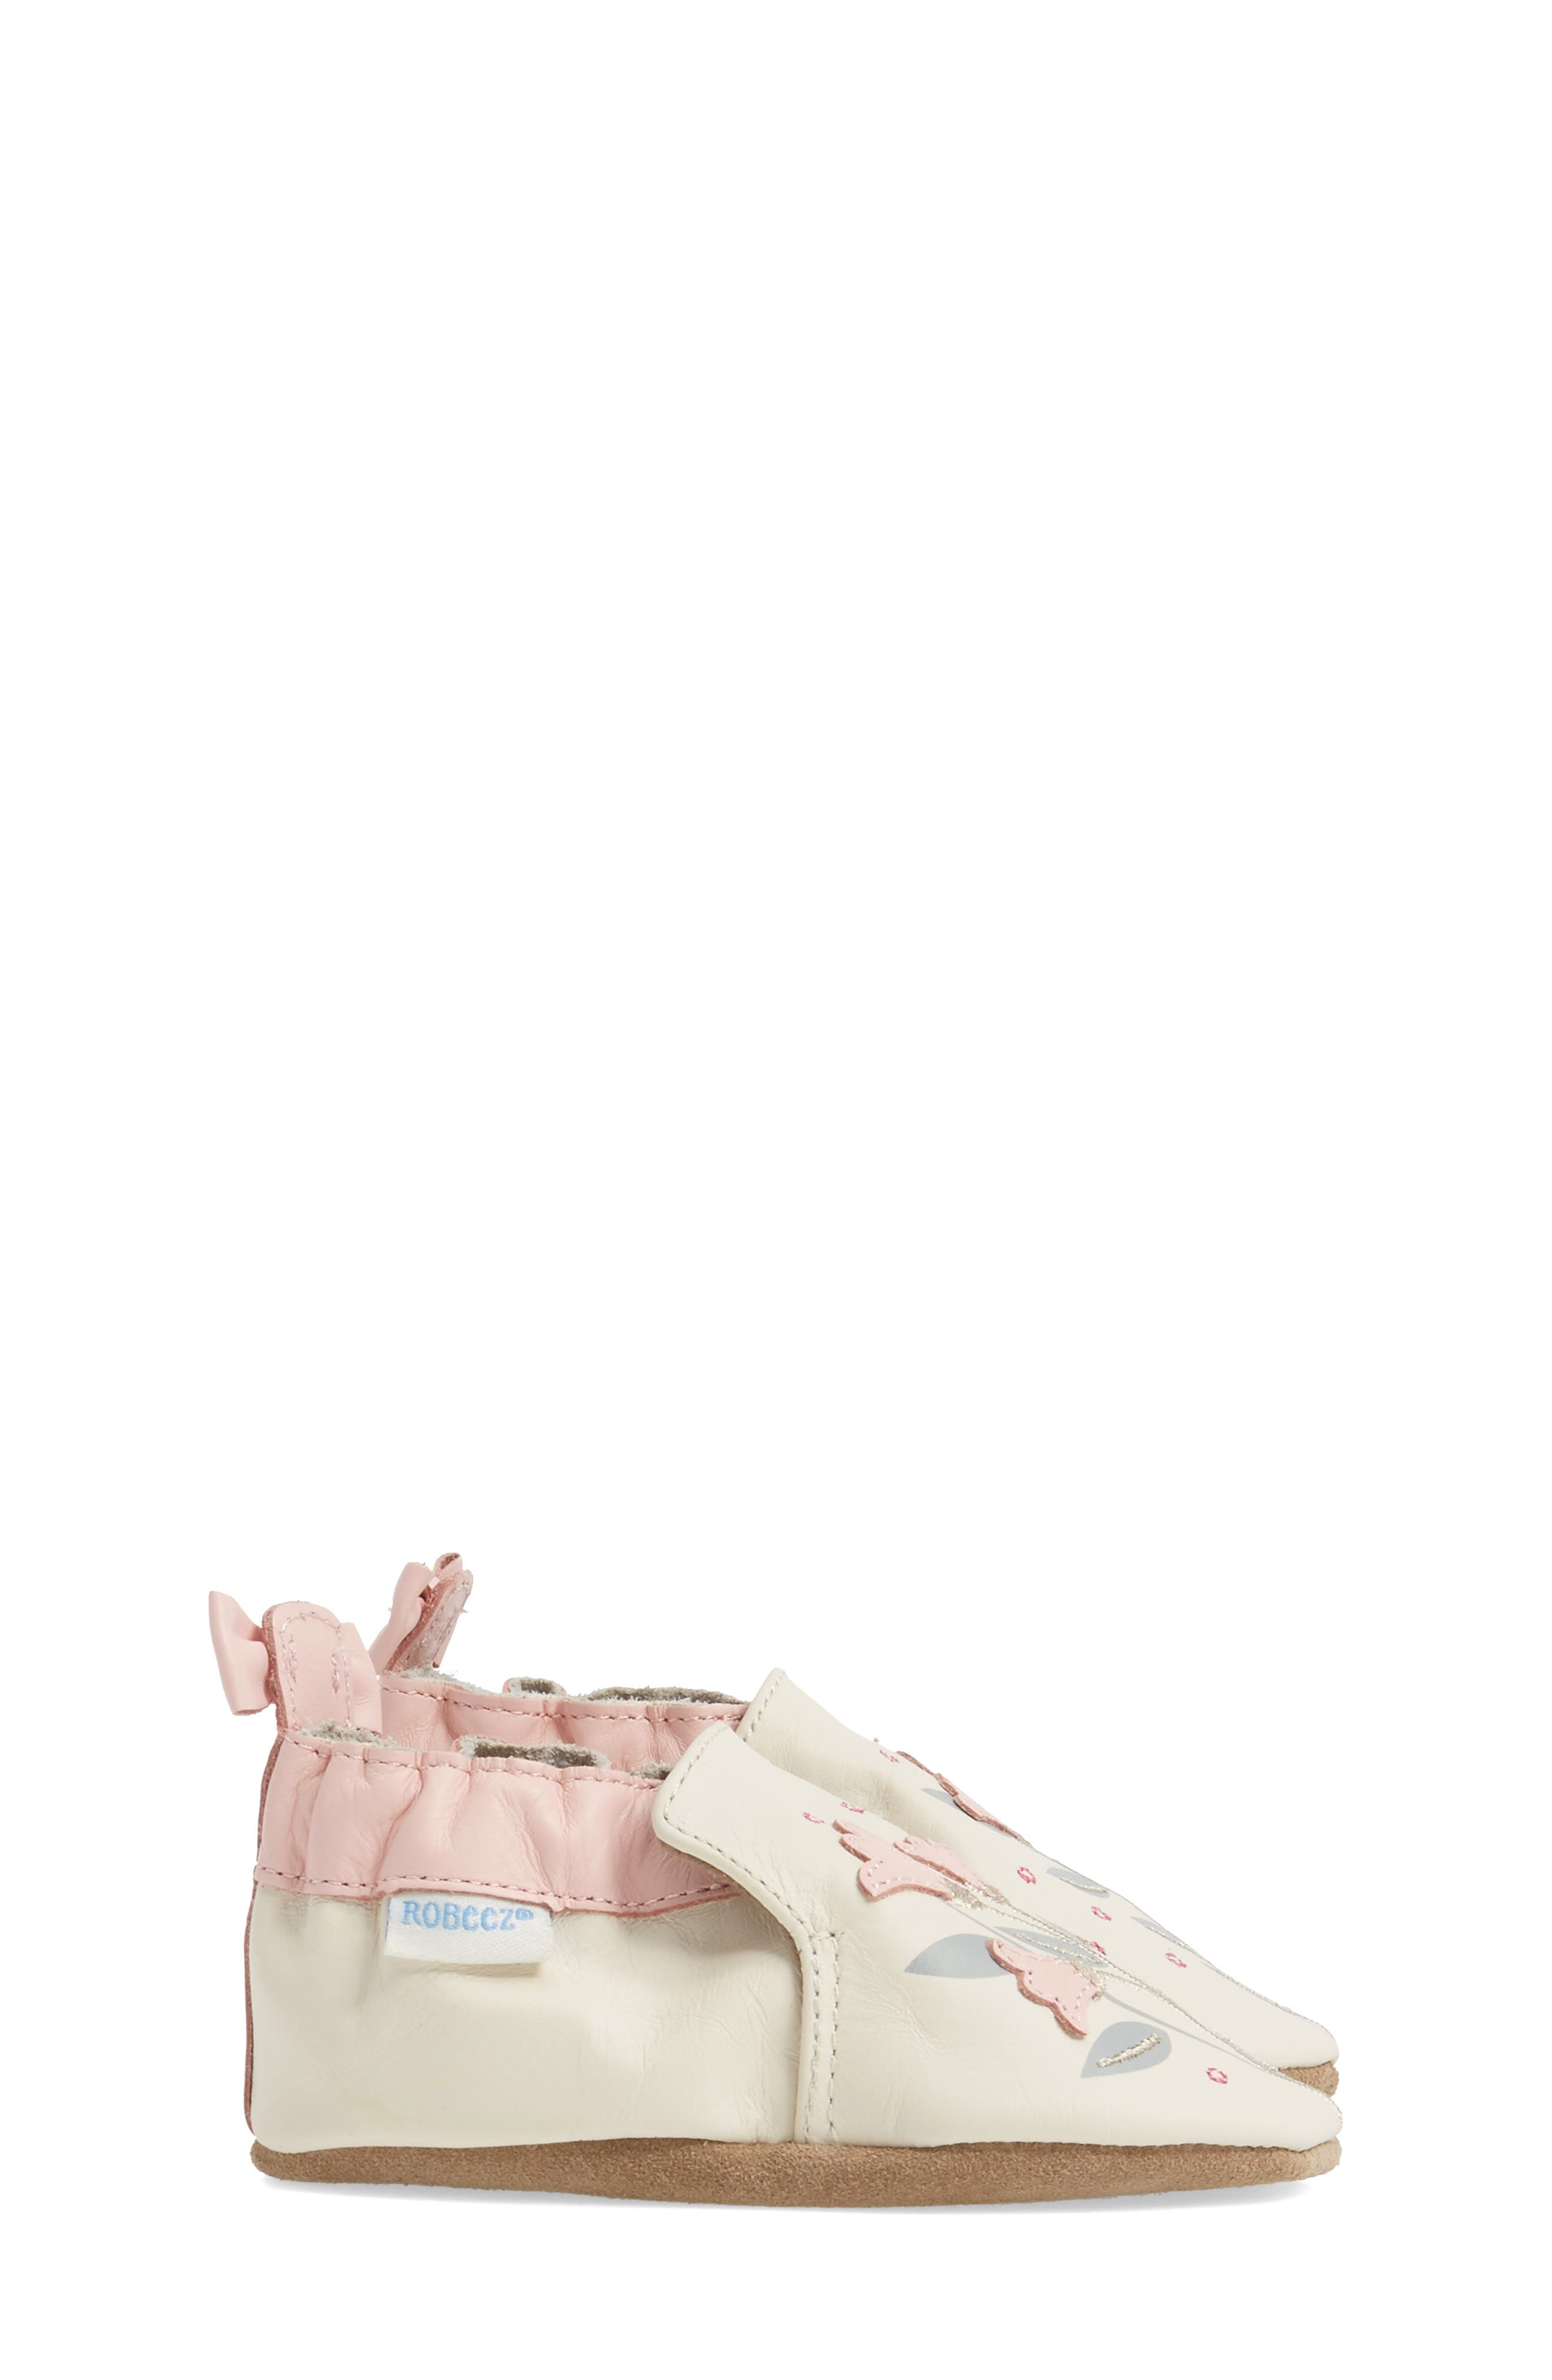 Rosealean Crib Shoe,                             Alternate thumbnail 3, color,                             Cream/ Pink Leather